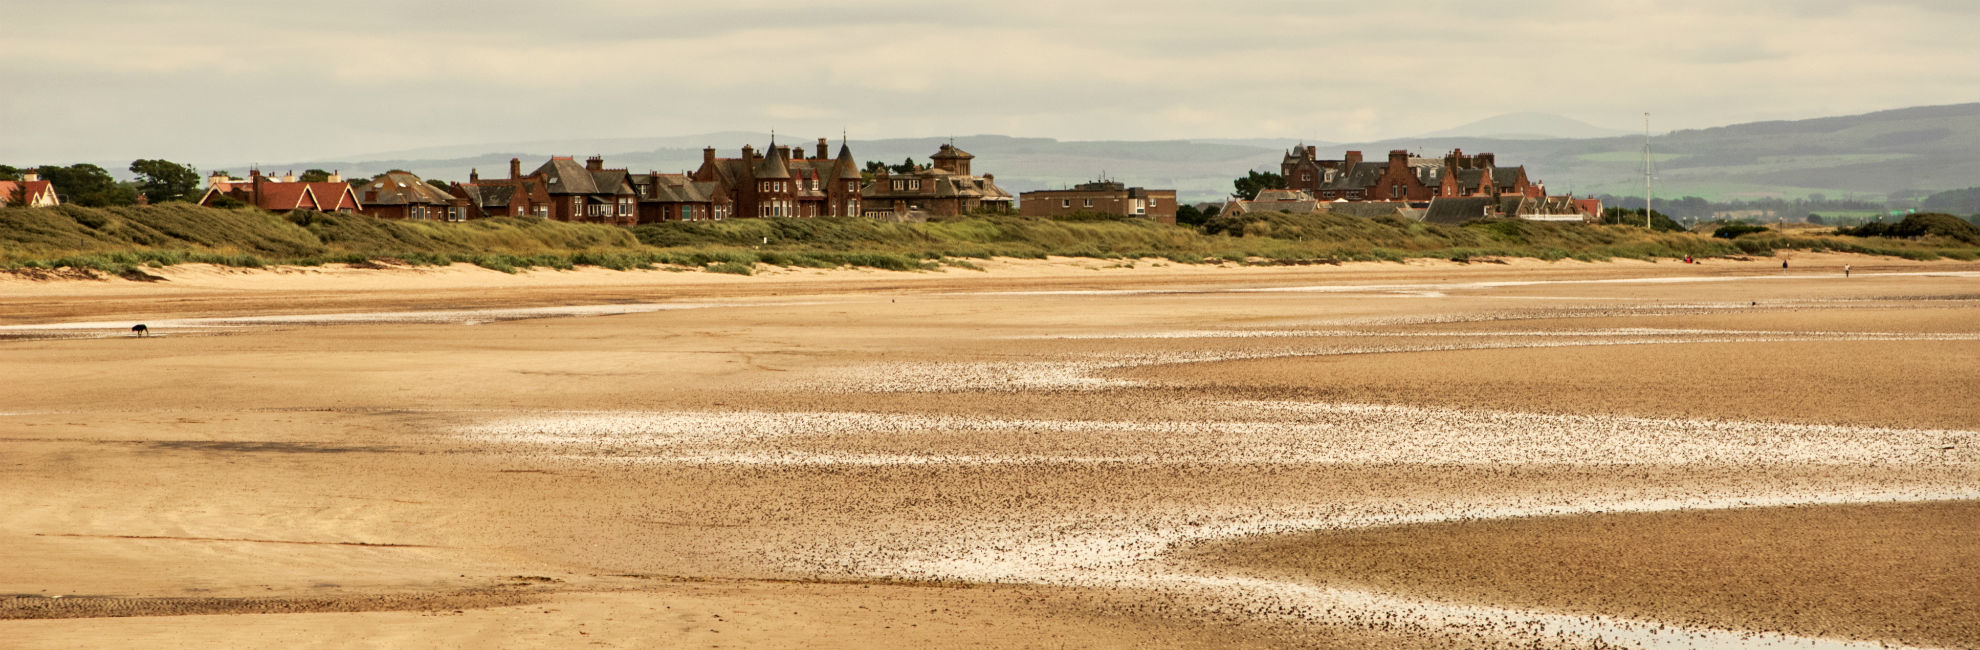 Looking over Troon's sandy beach towards the town of Troon in Scotland